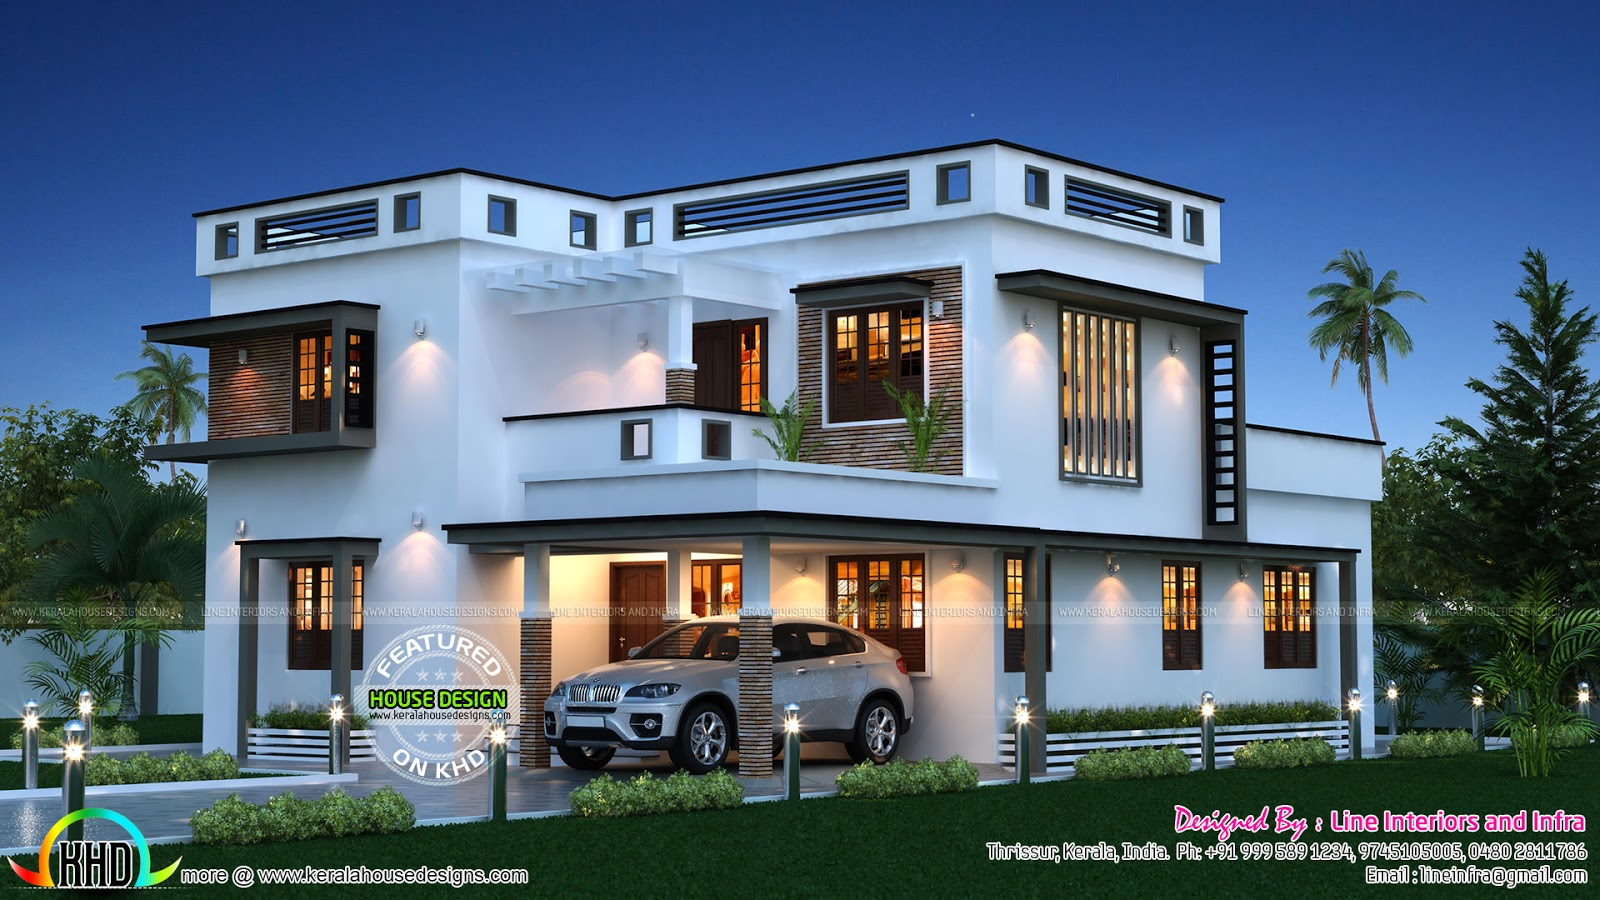 Beautiful 1600 Sq Ft Home Kerala Home Design And Floor Plans: house beautiful com kitchens